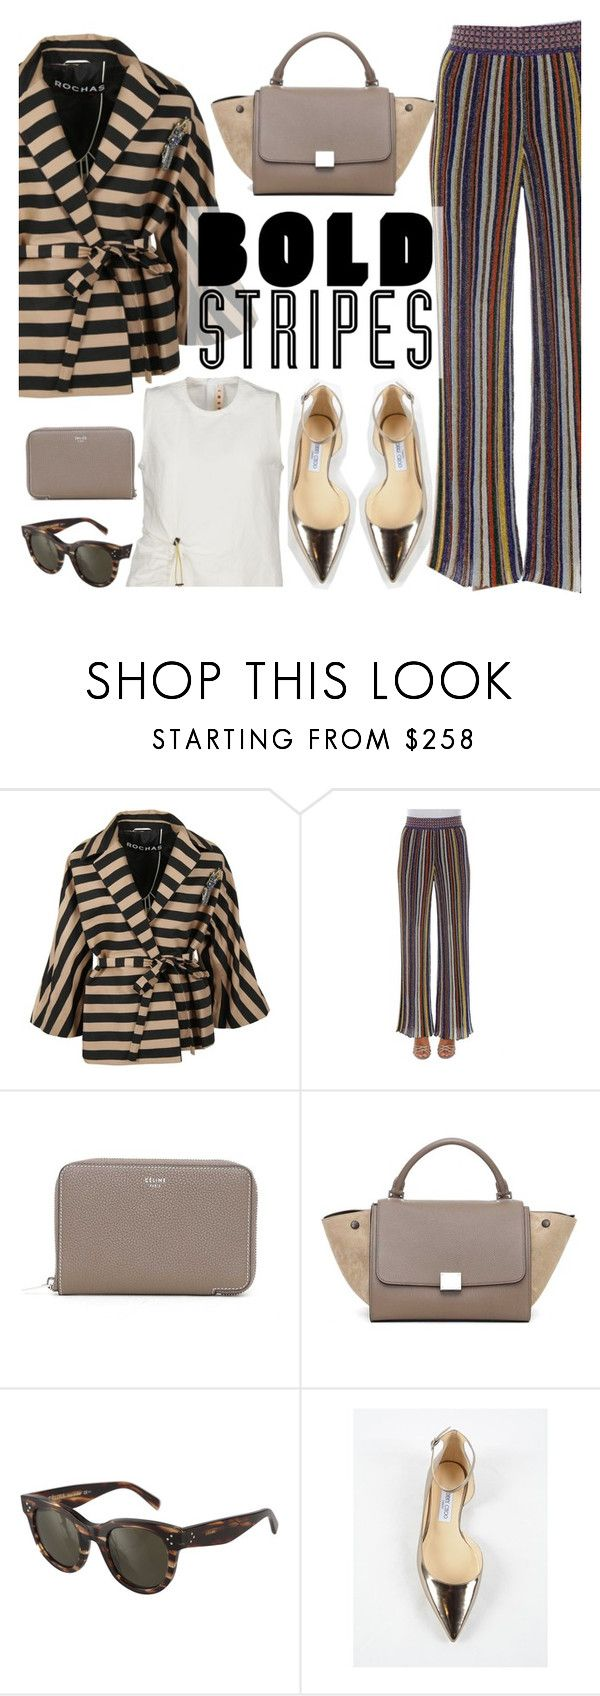 """bold stripes"" by italist ❤ liked on Polyvore featuring Rochas, Missoni, CÉLINE, Jimmy Choo and Marni"